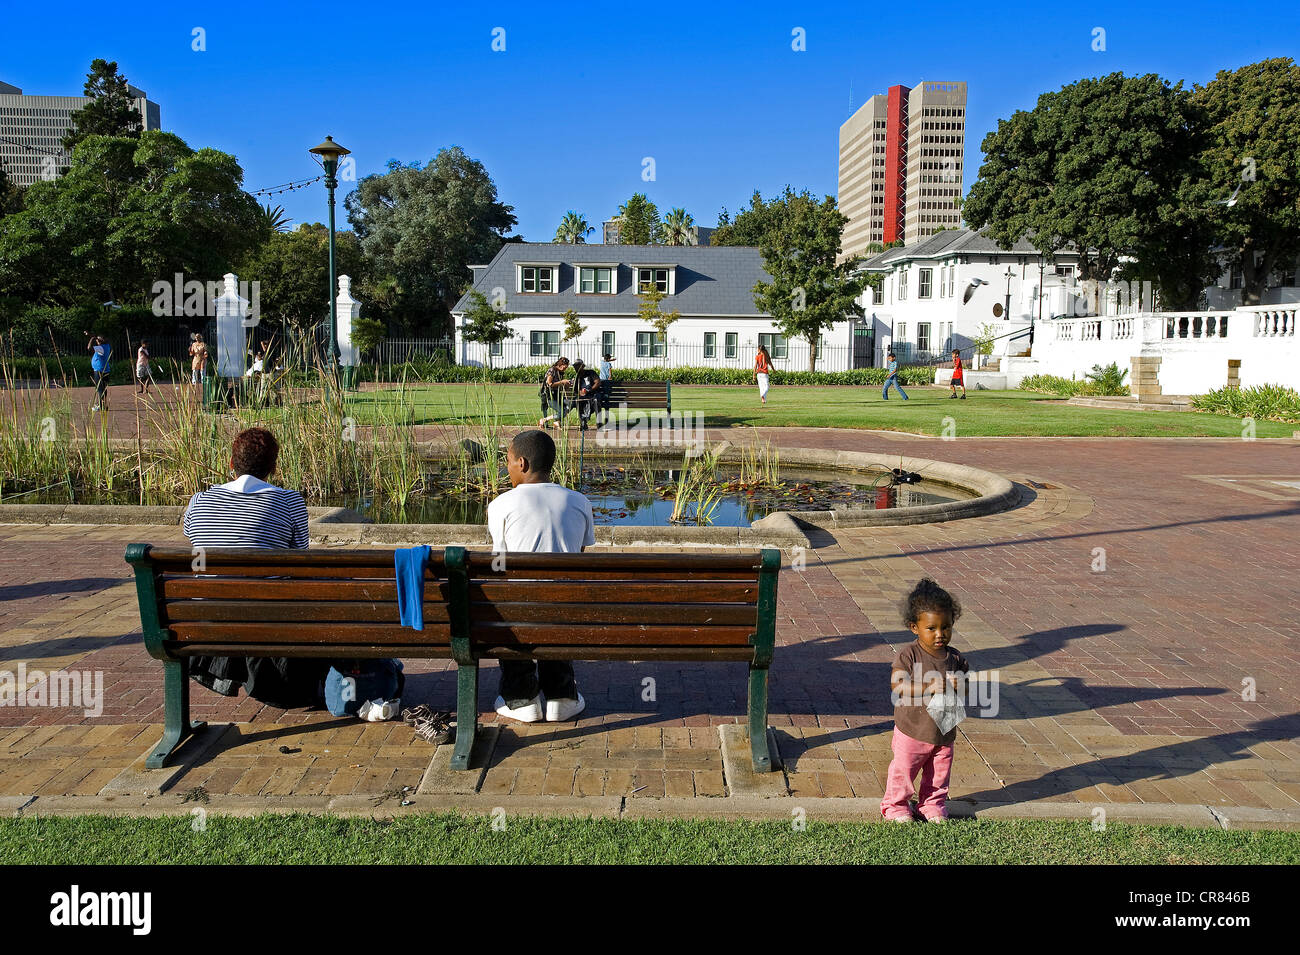 South Africa, Western Cape, Cape Town, Company's Garden Stock Photo